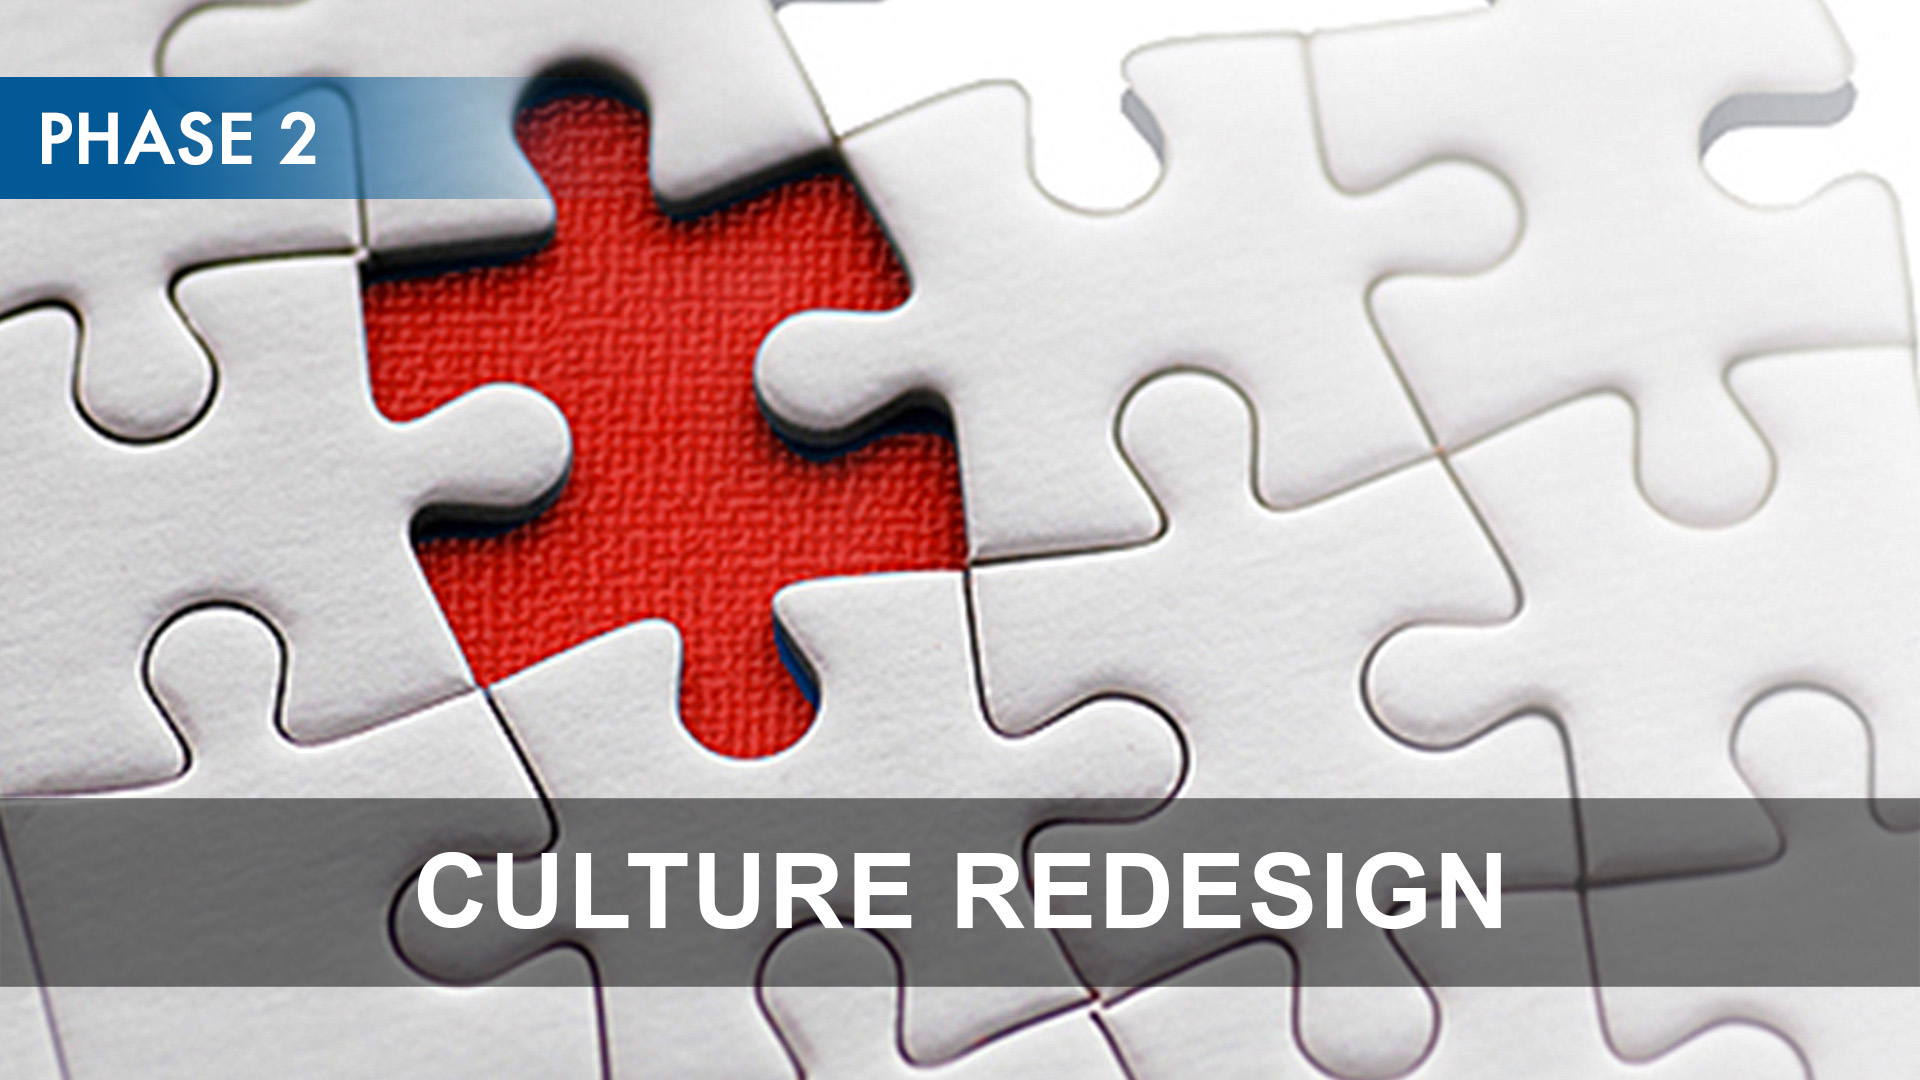 Phase 2 - Culture Redesign.jpg